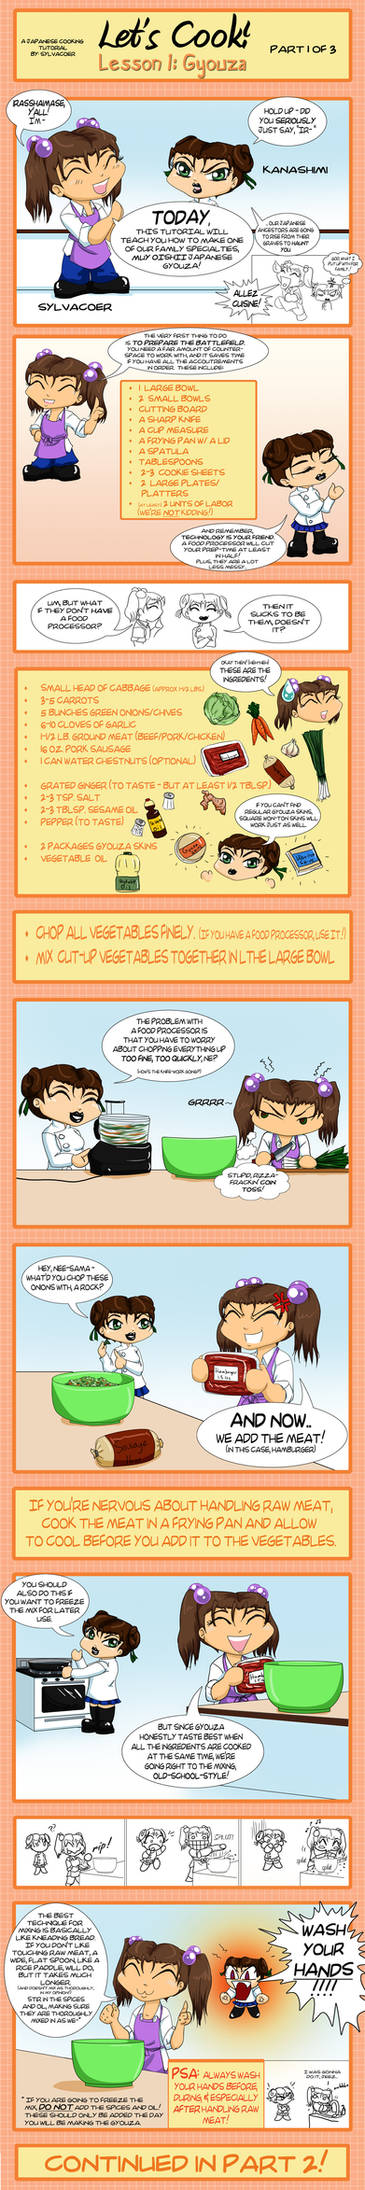 Let's Cook: Gyouza -Tut.1of3-